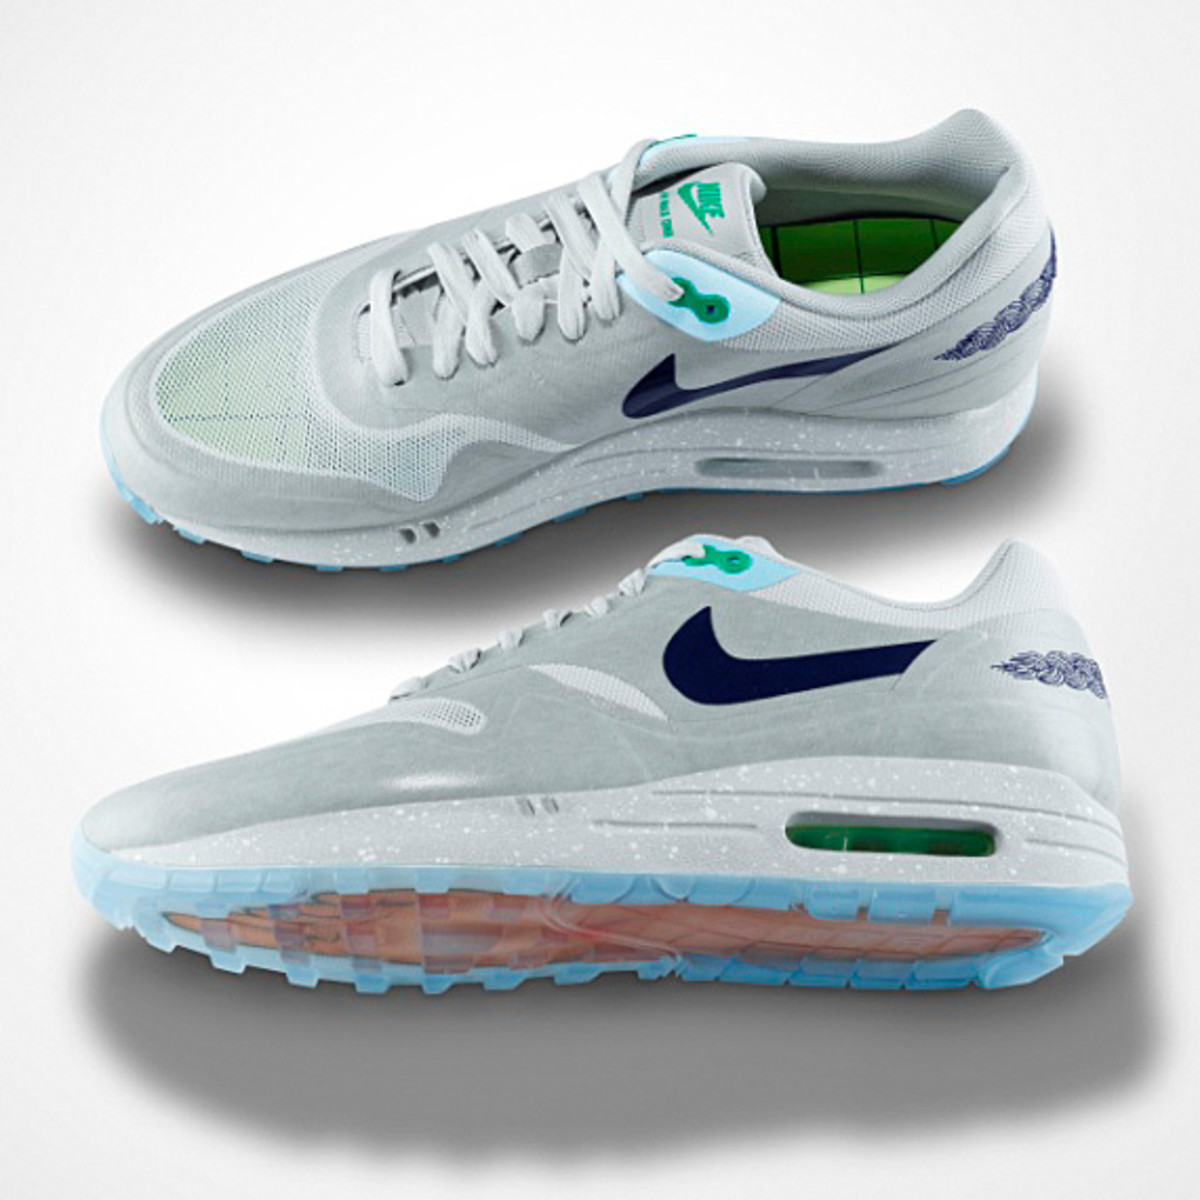 clot-x-nike-air-max-1-sp-detailed-look-03